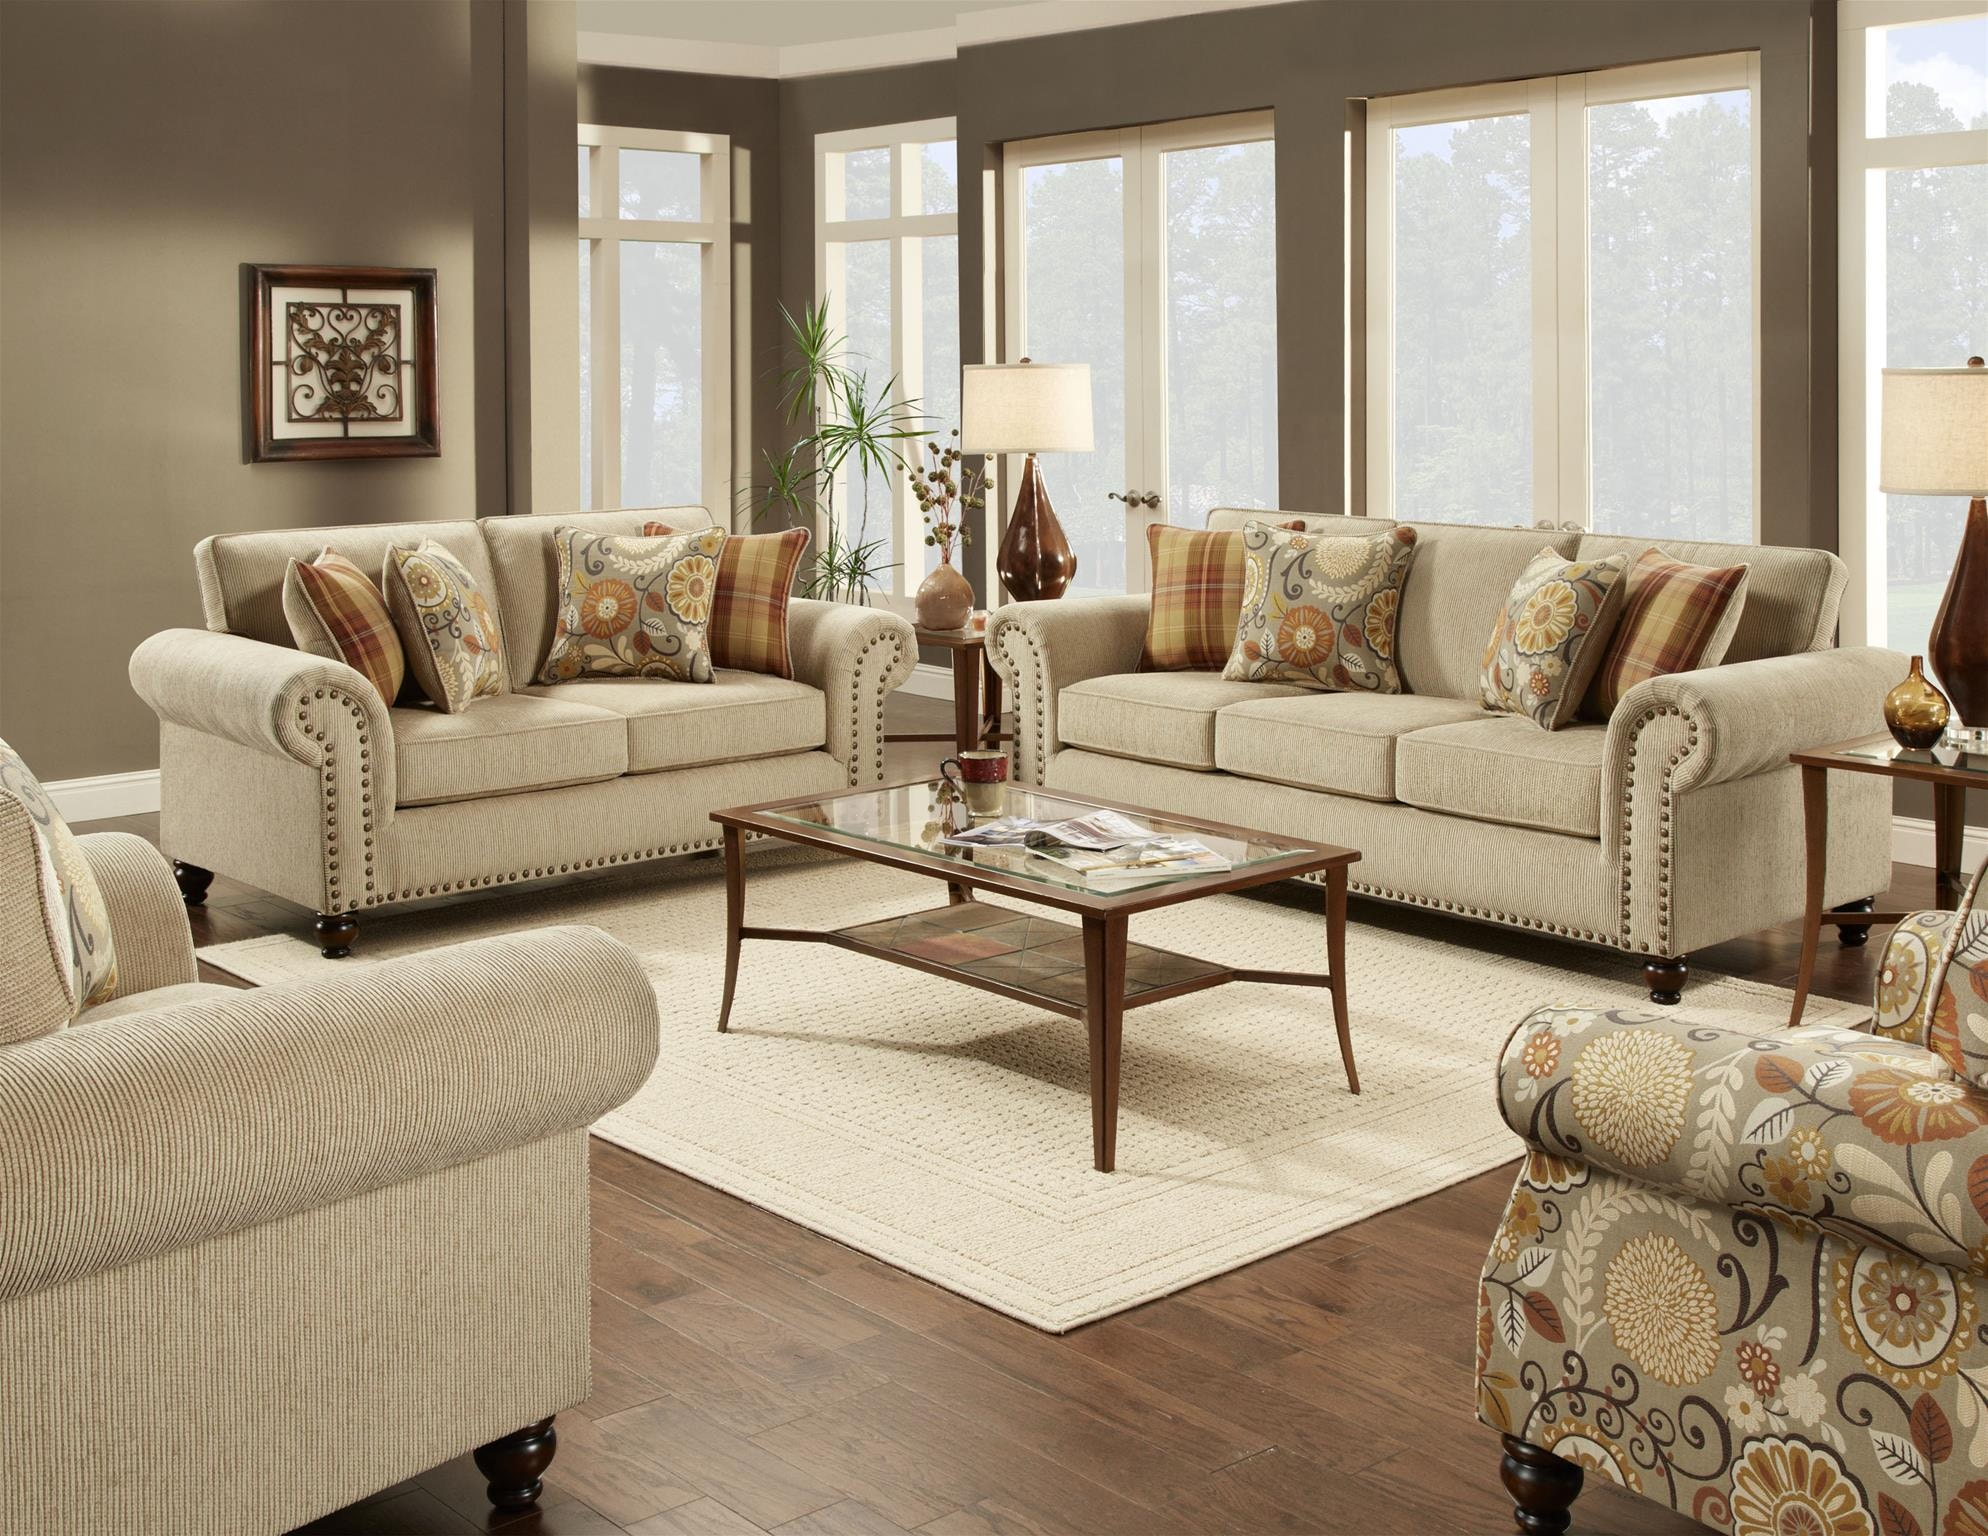 Fusion Living Room Chair 1/2 3112Out West Linen At B.F. Myers Furniture